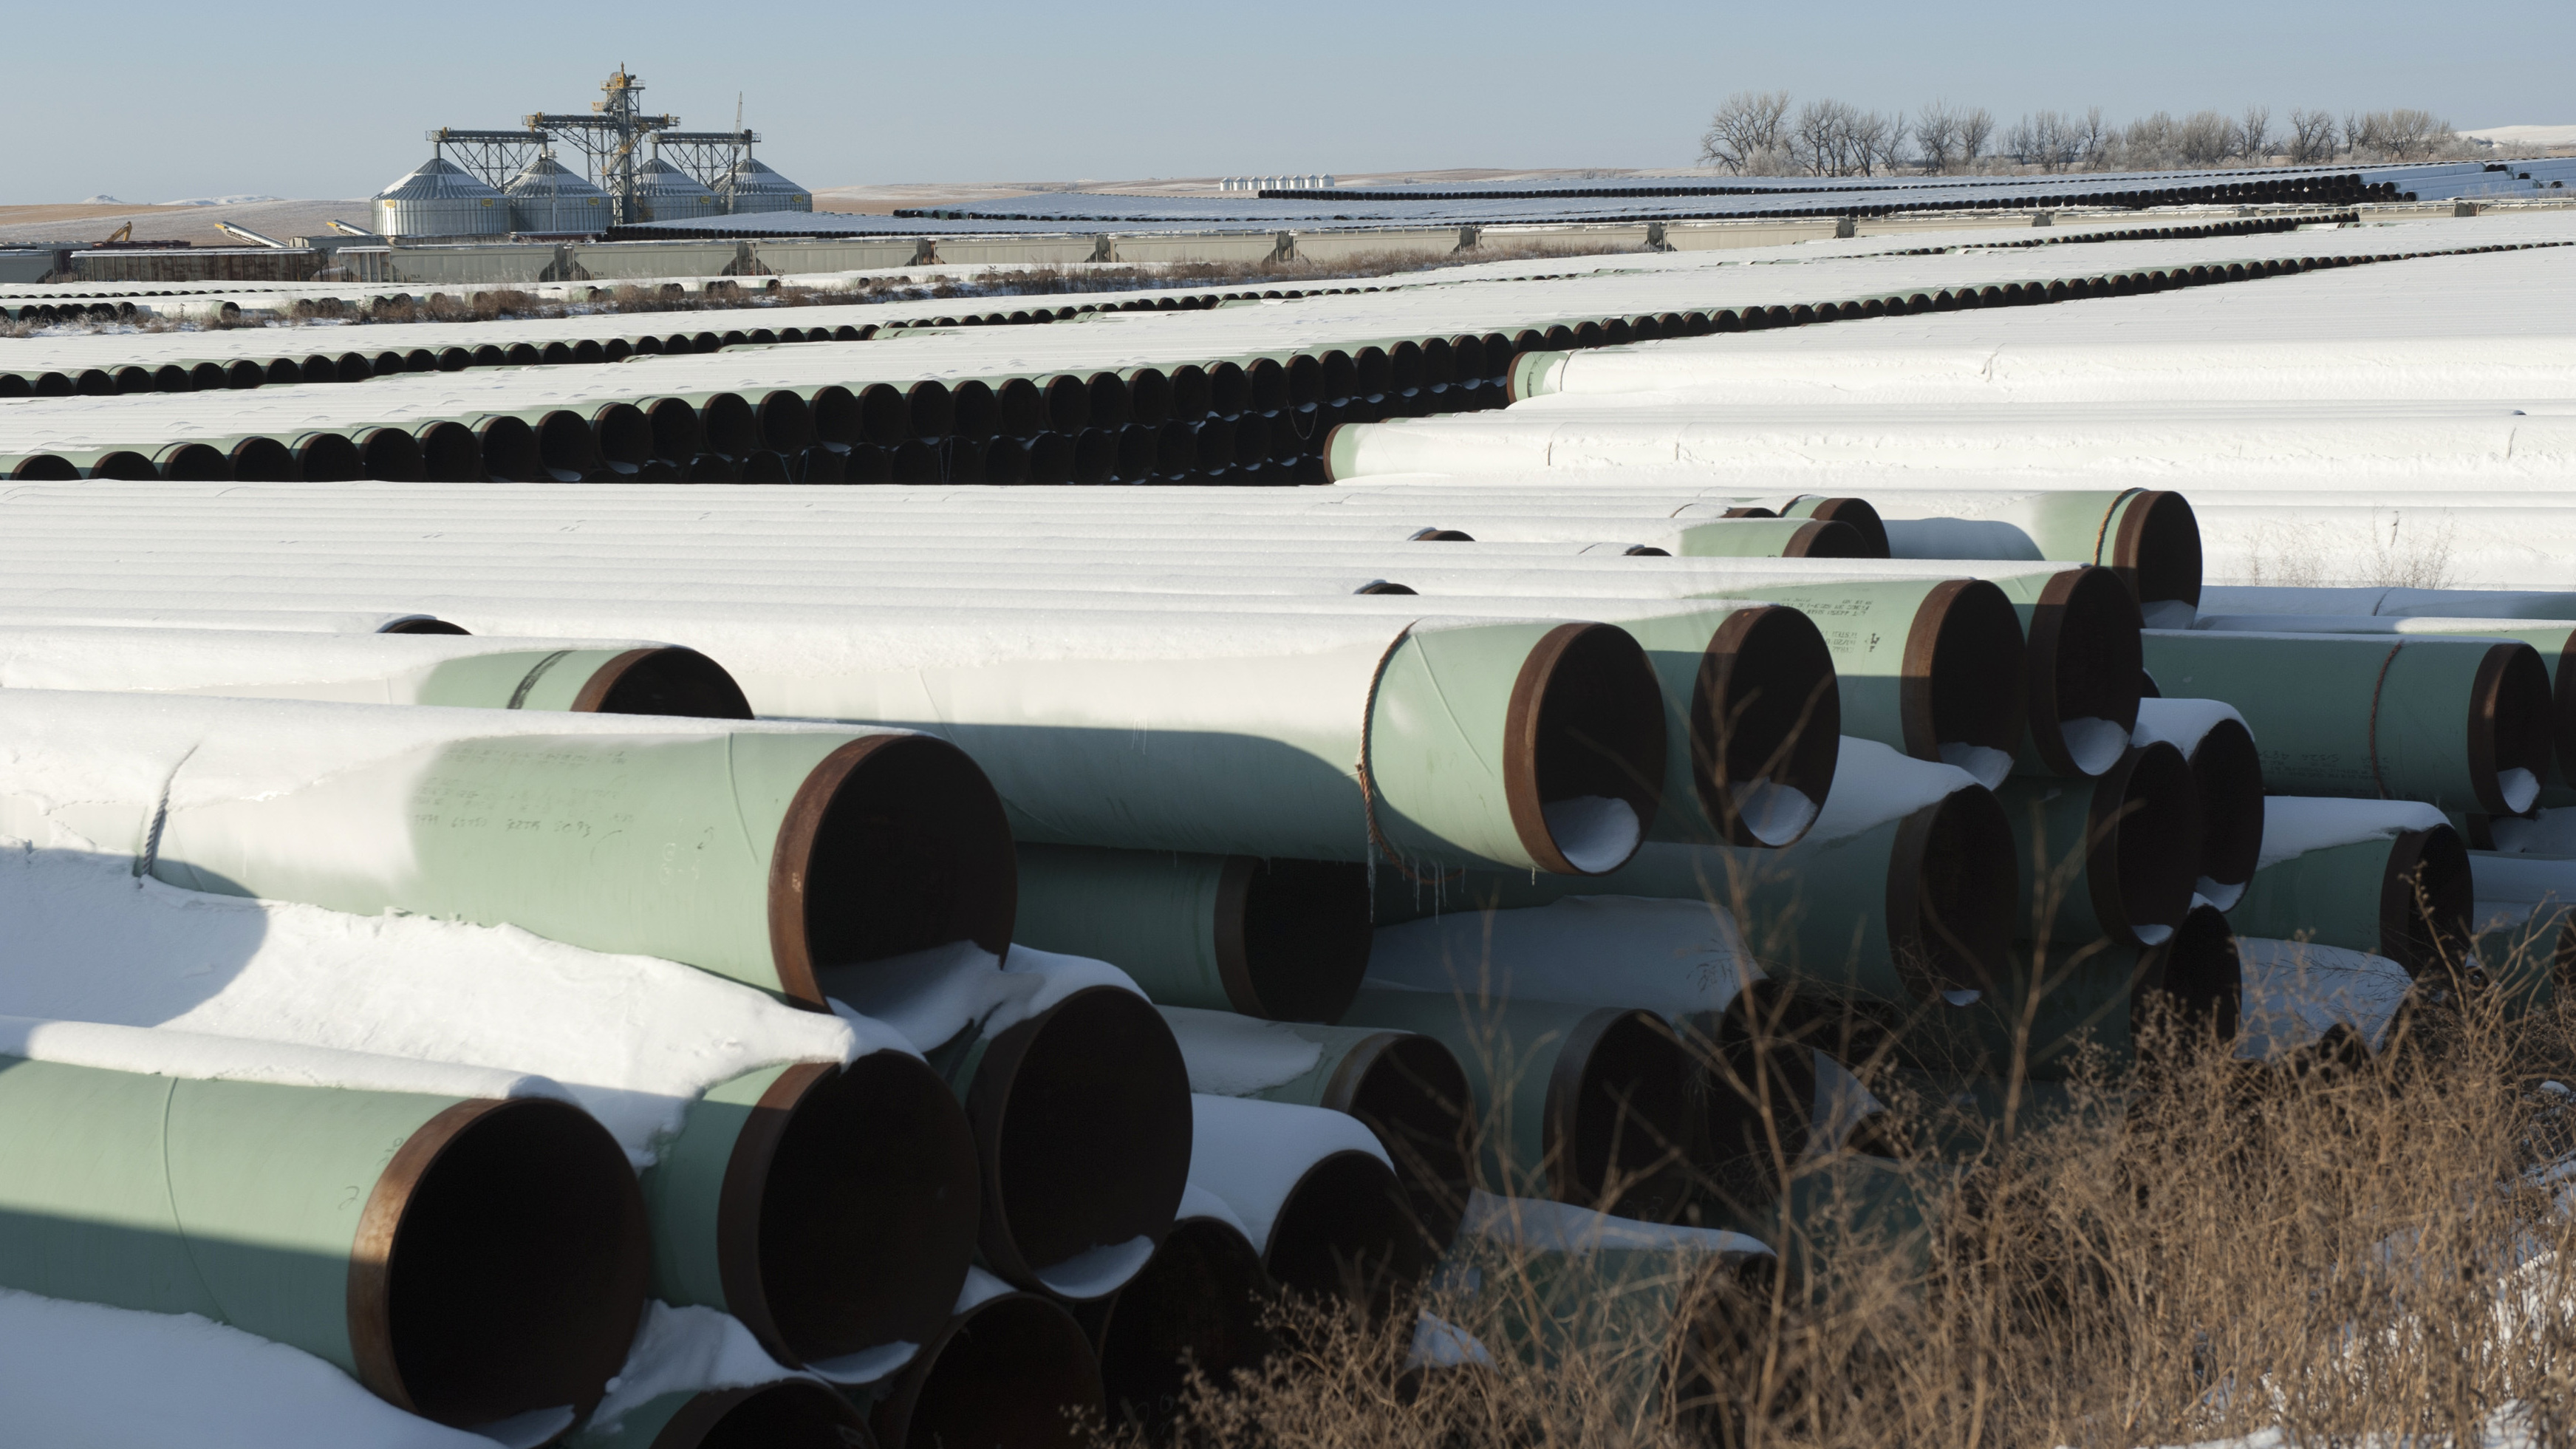 Senate Rejects Keystone XL Pipeline Bill, In A Close Vote